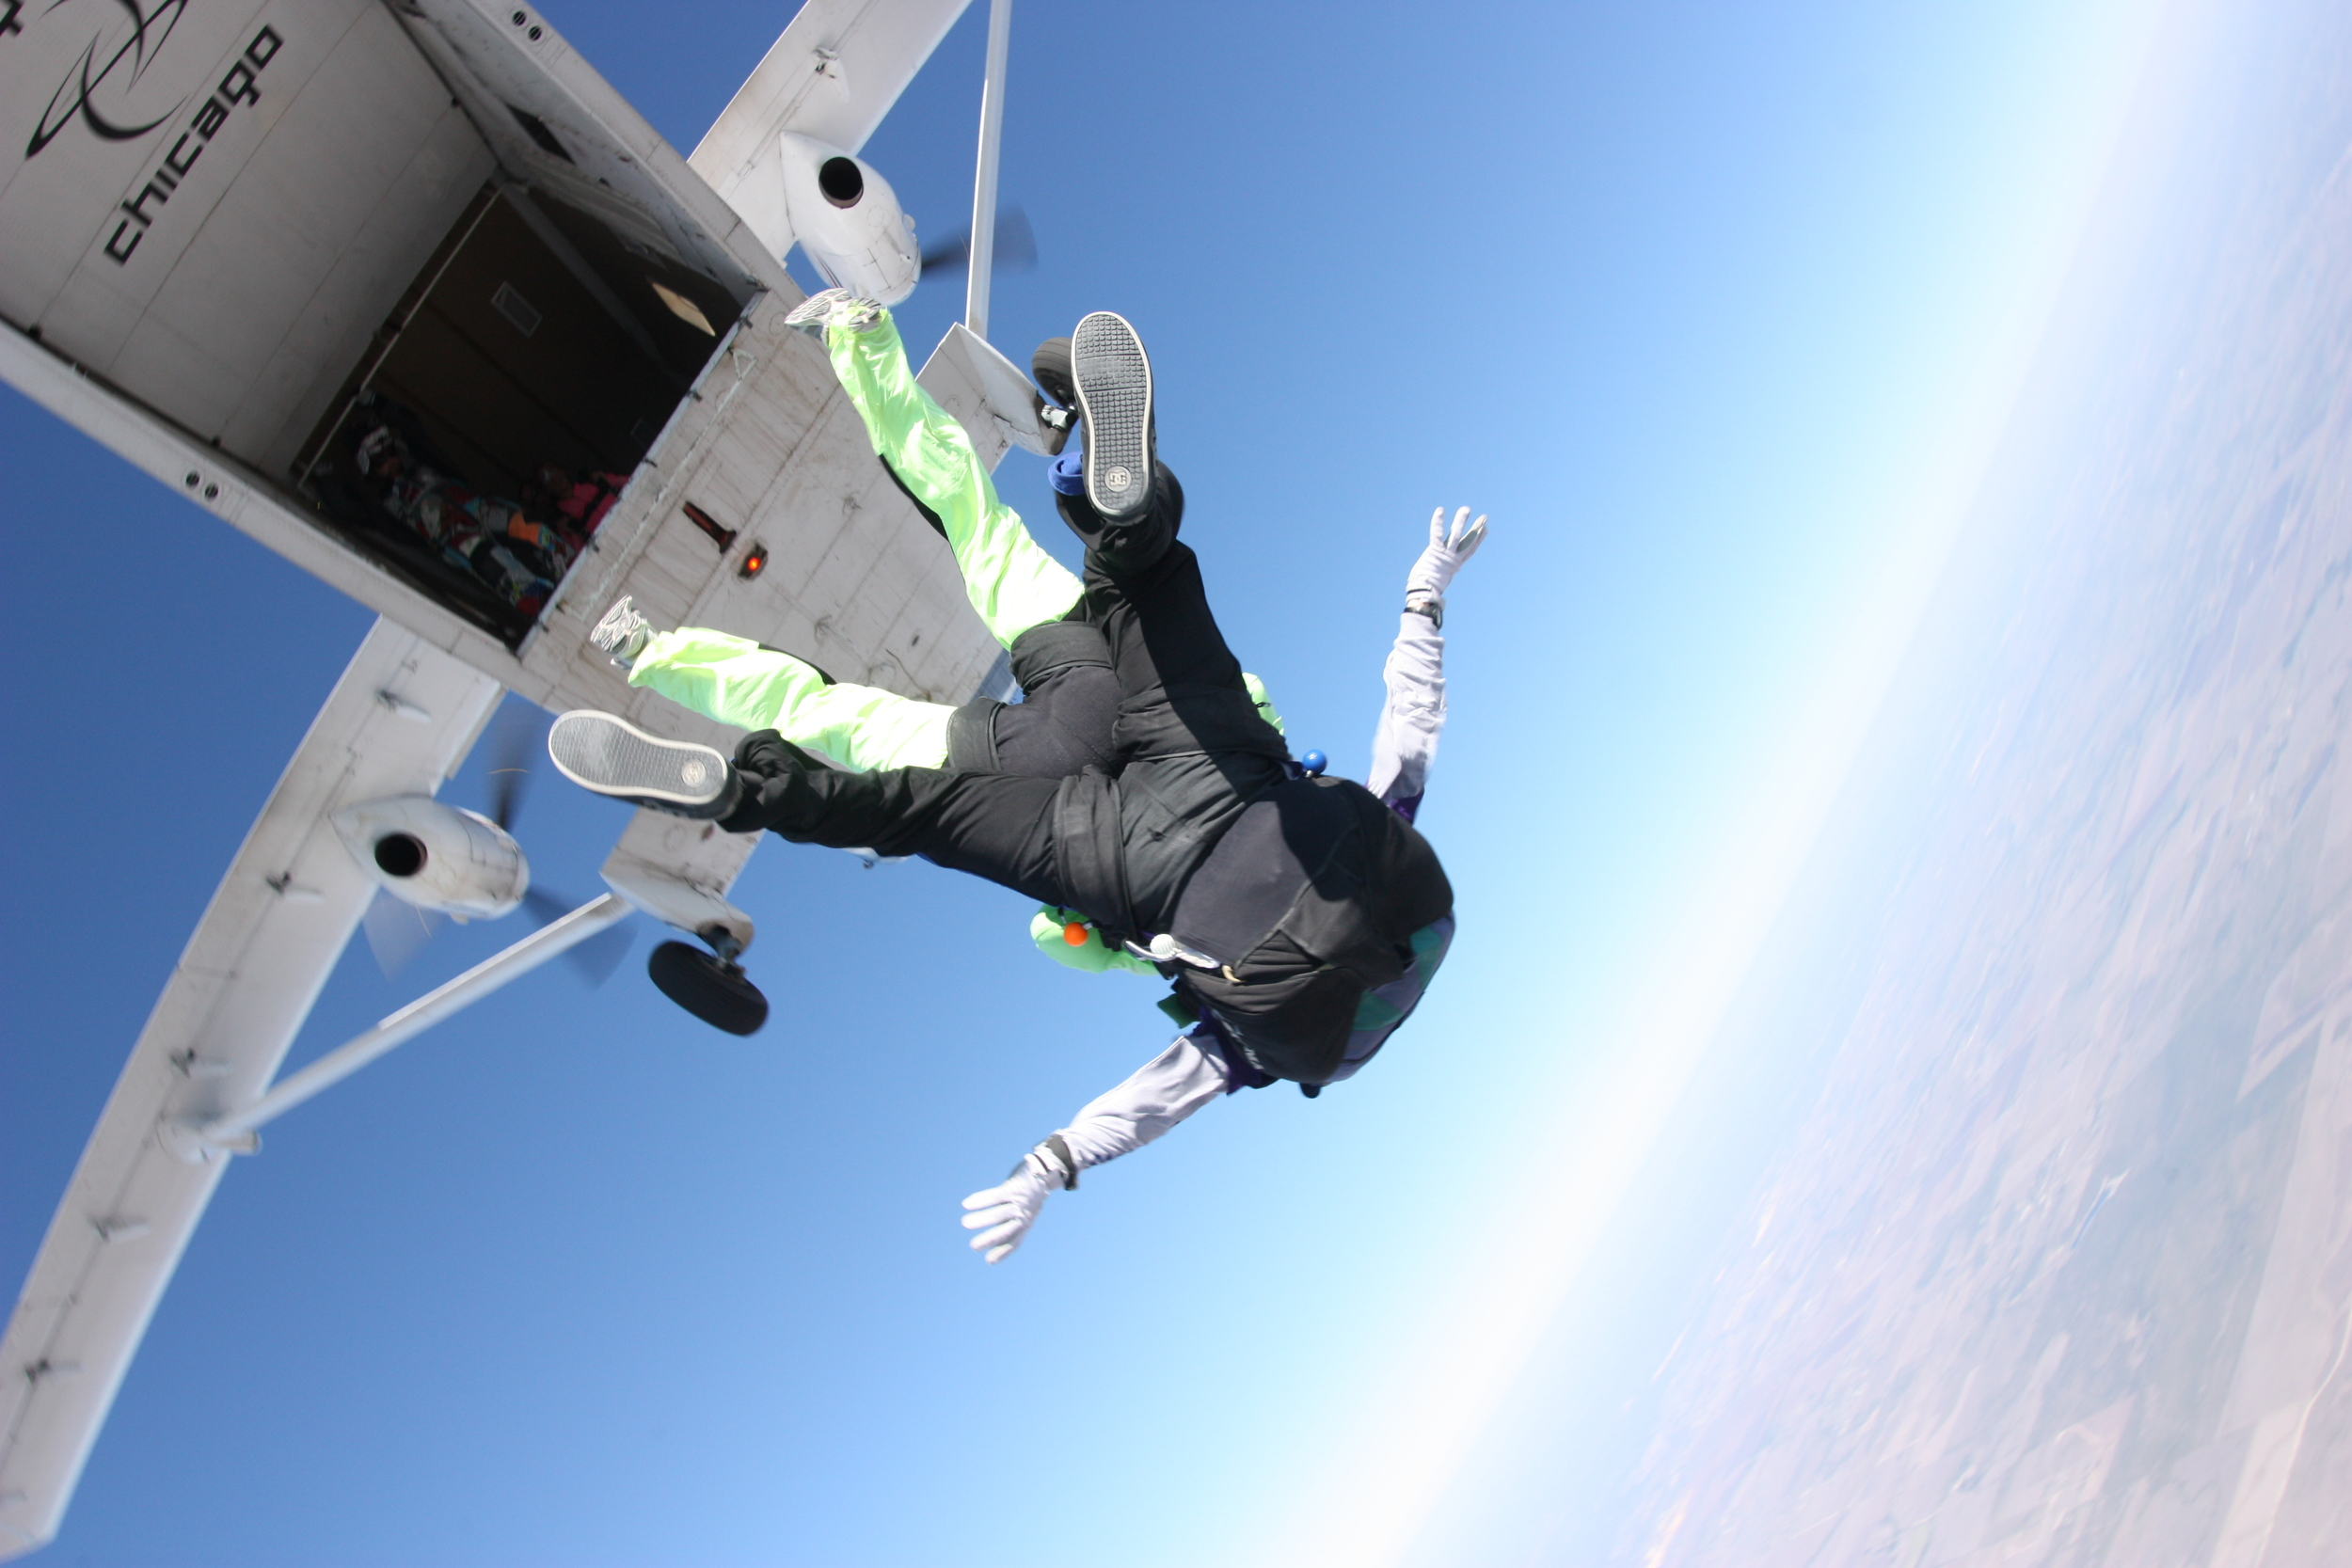 So this weekend I jumped out of an airplane...